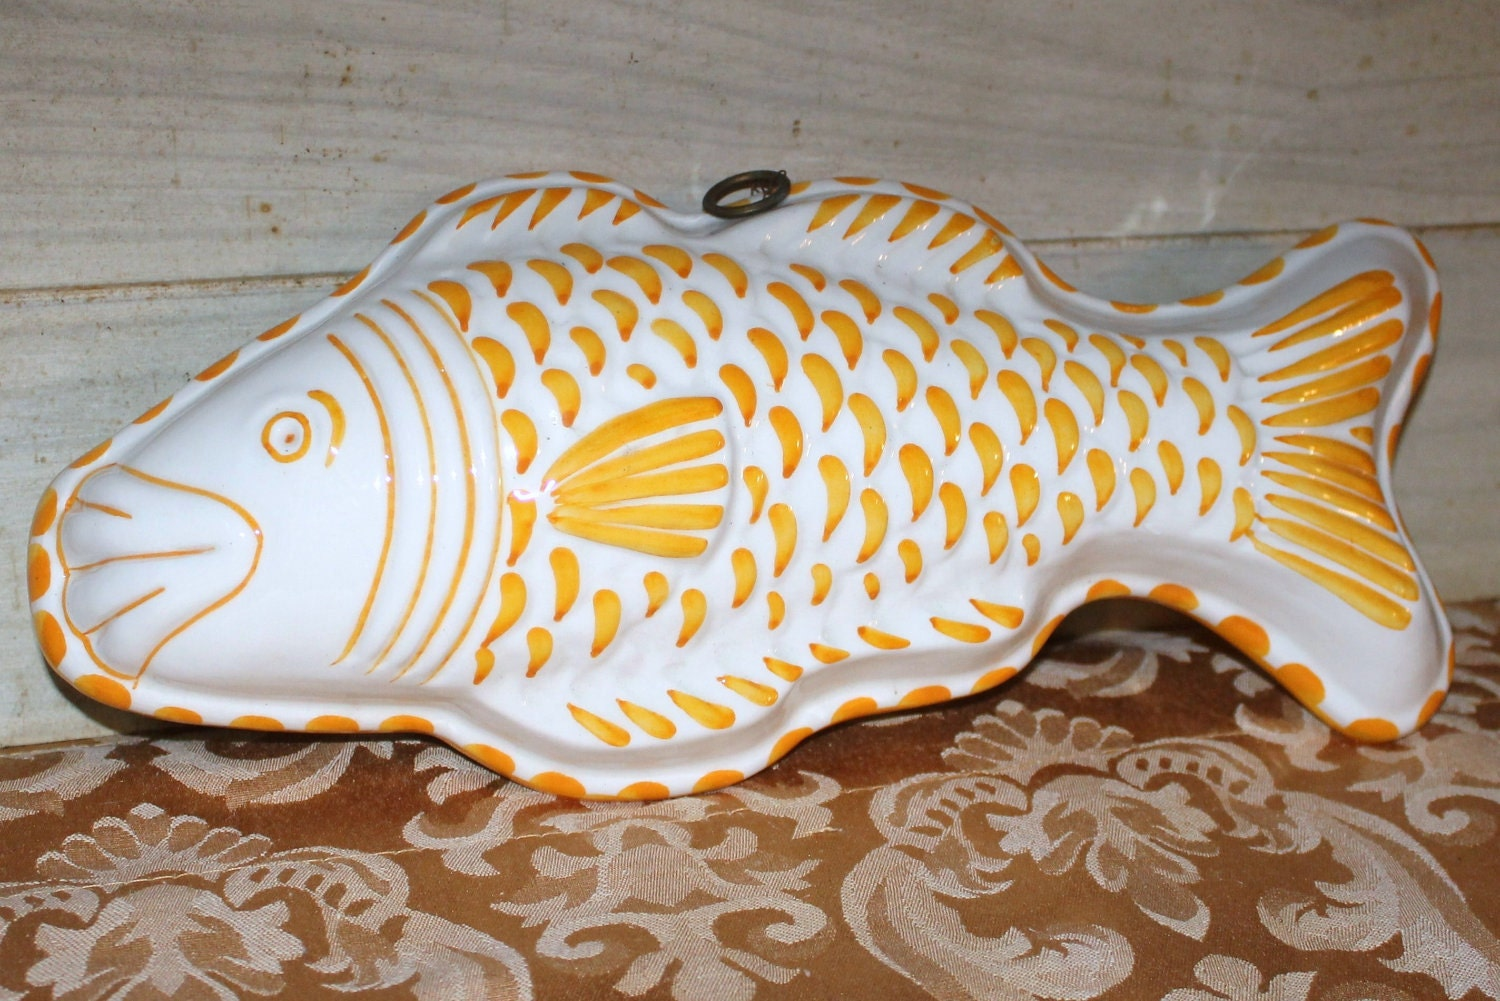 Vintage yellow and white ceramic fish mold housewares home for Koi fish mold